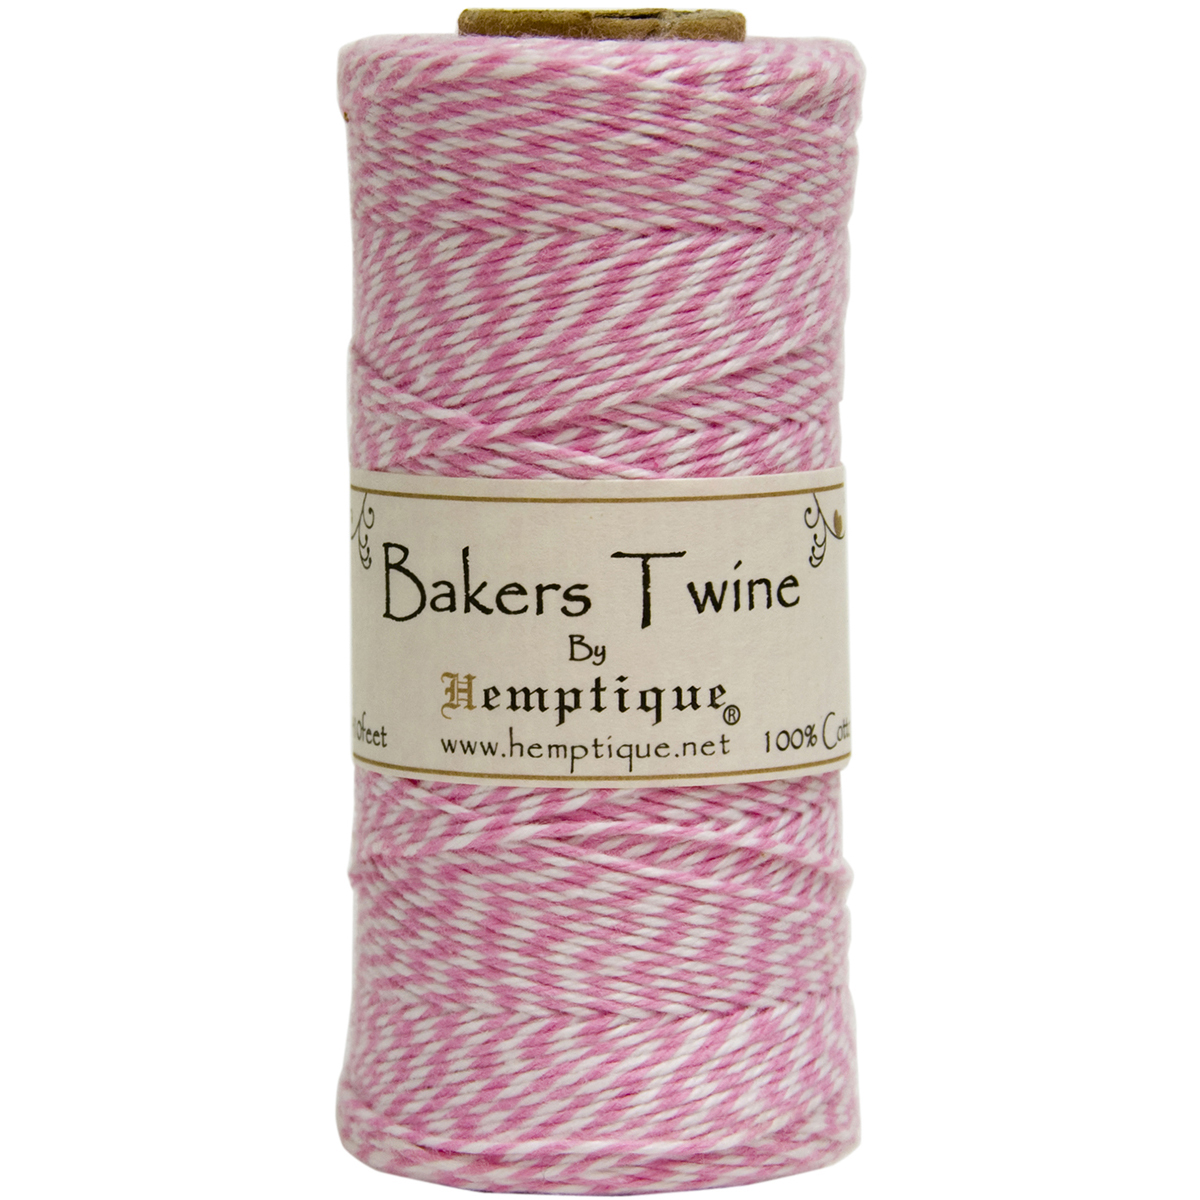 LT PINK/WH-BAKERS TWINE SPOOL